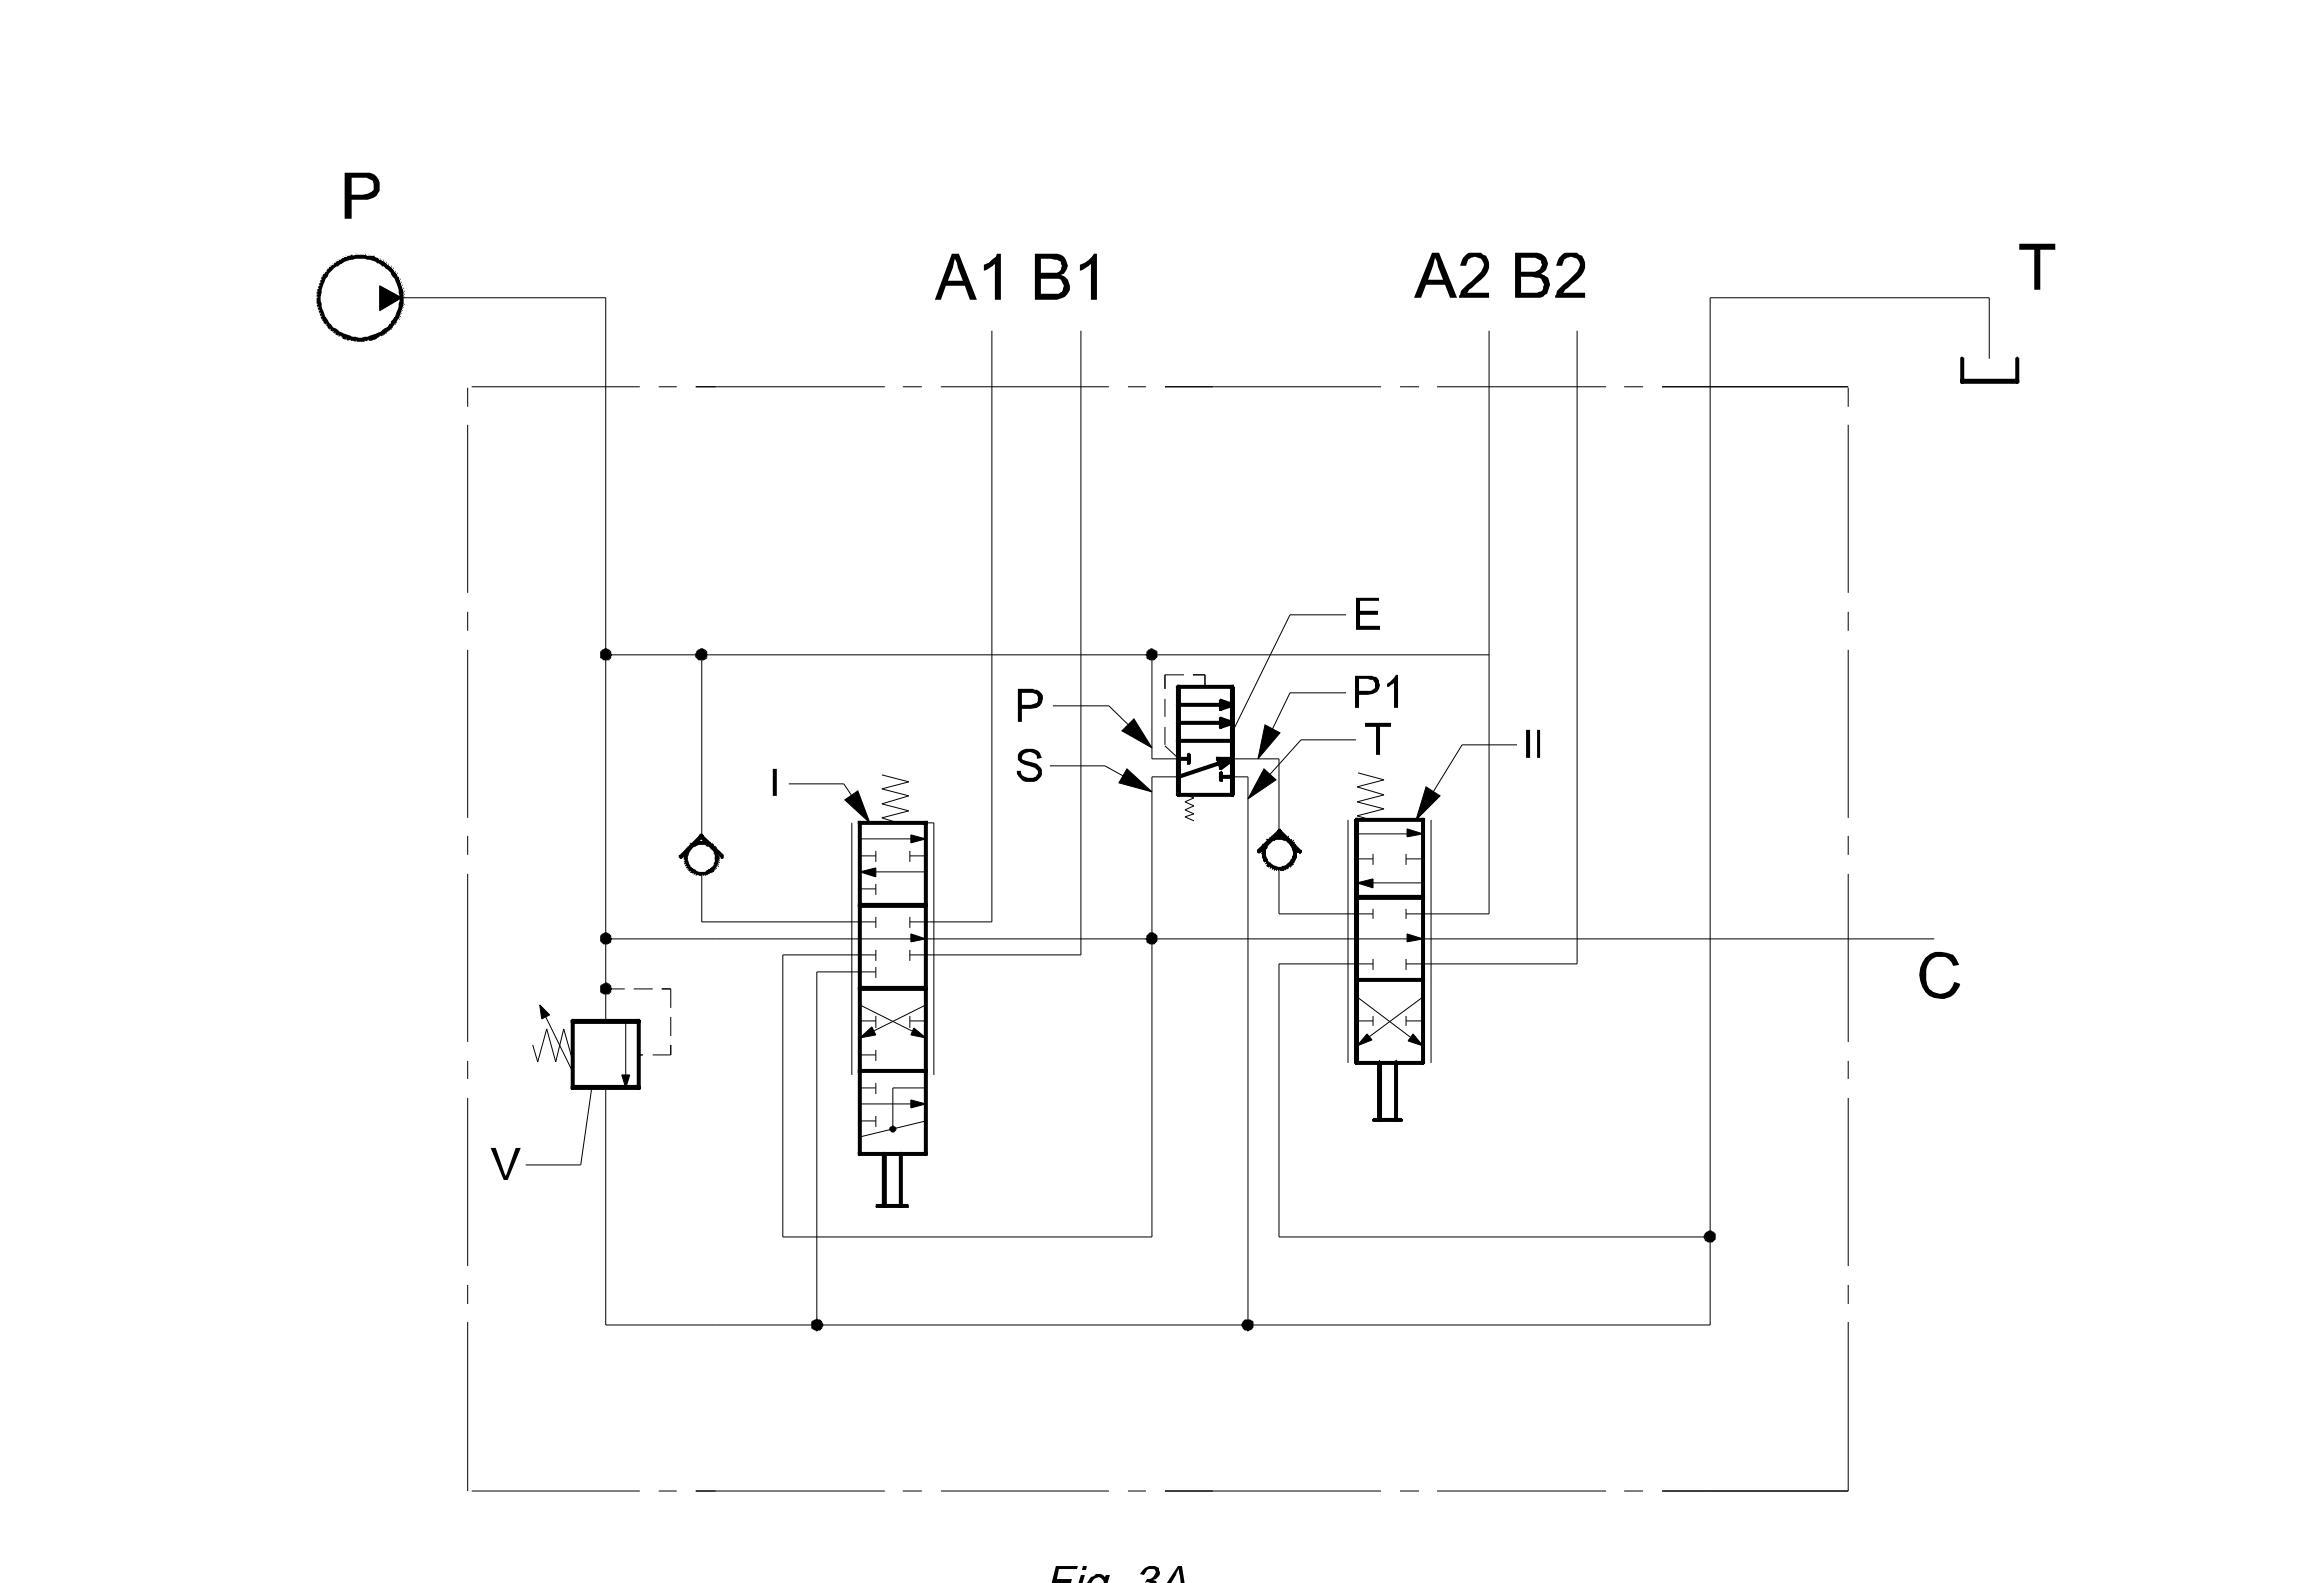 Walvoil SXP combines advantages of both Series and Parallel ... on 574 international tractor carburetor schematic, hydraulic loader valve schematic, front end loader scales, front end loader hydraulic design, front end loaders for tractors, front end loader operation, shuttle valve schematic, front end loader attachments, front end loader accidents, front loader hydraulic systems on, skid loader hydraulic schematic, front end loader snow plow, front loader dimensions, for on front loader hydraulic schematic, front end loader drawing, front end loader for utv, front end loader hydraulic cylinders,